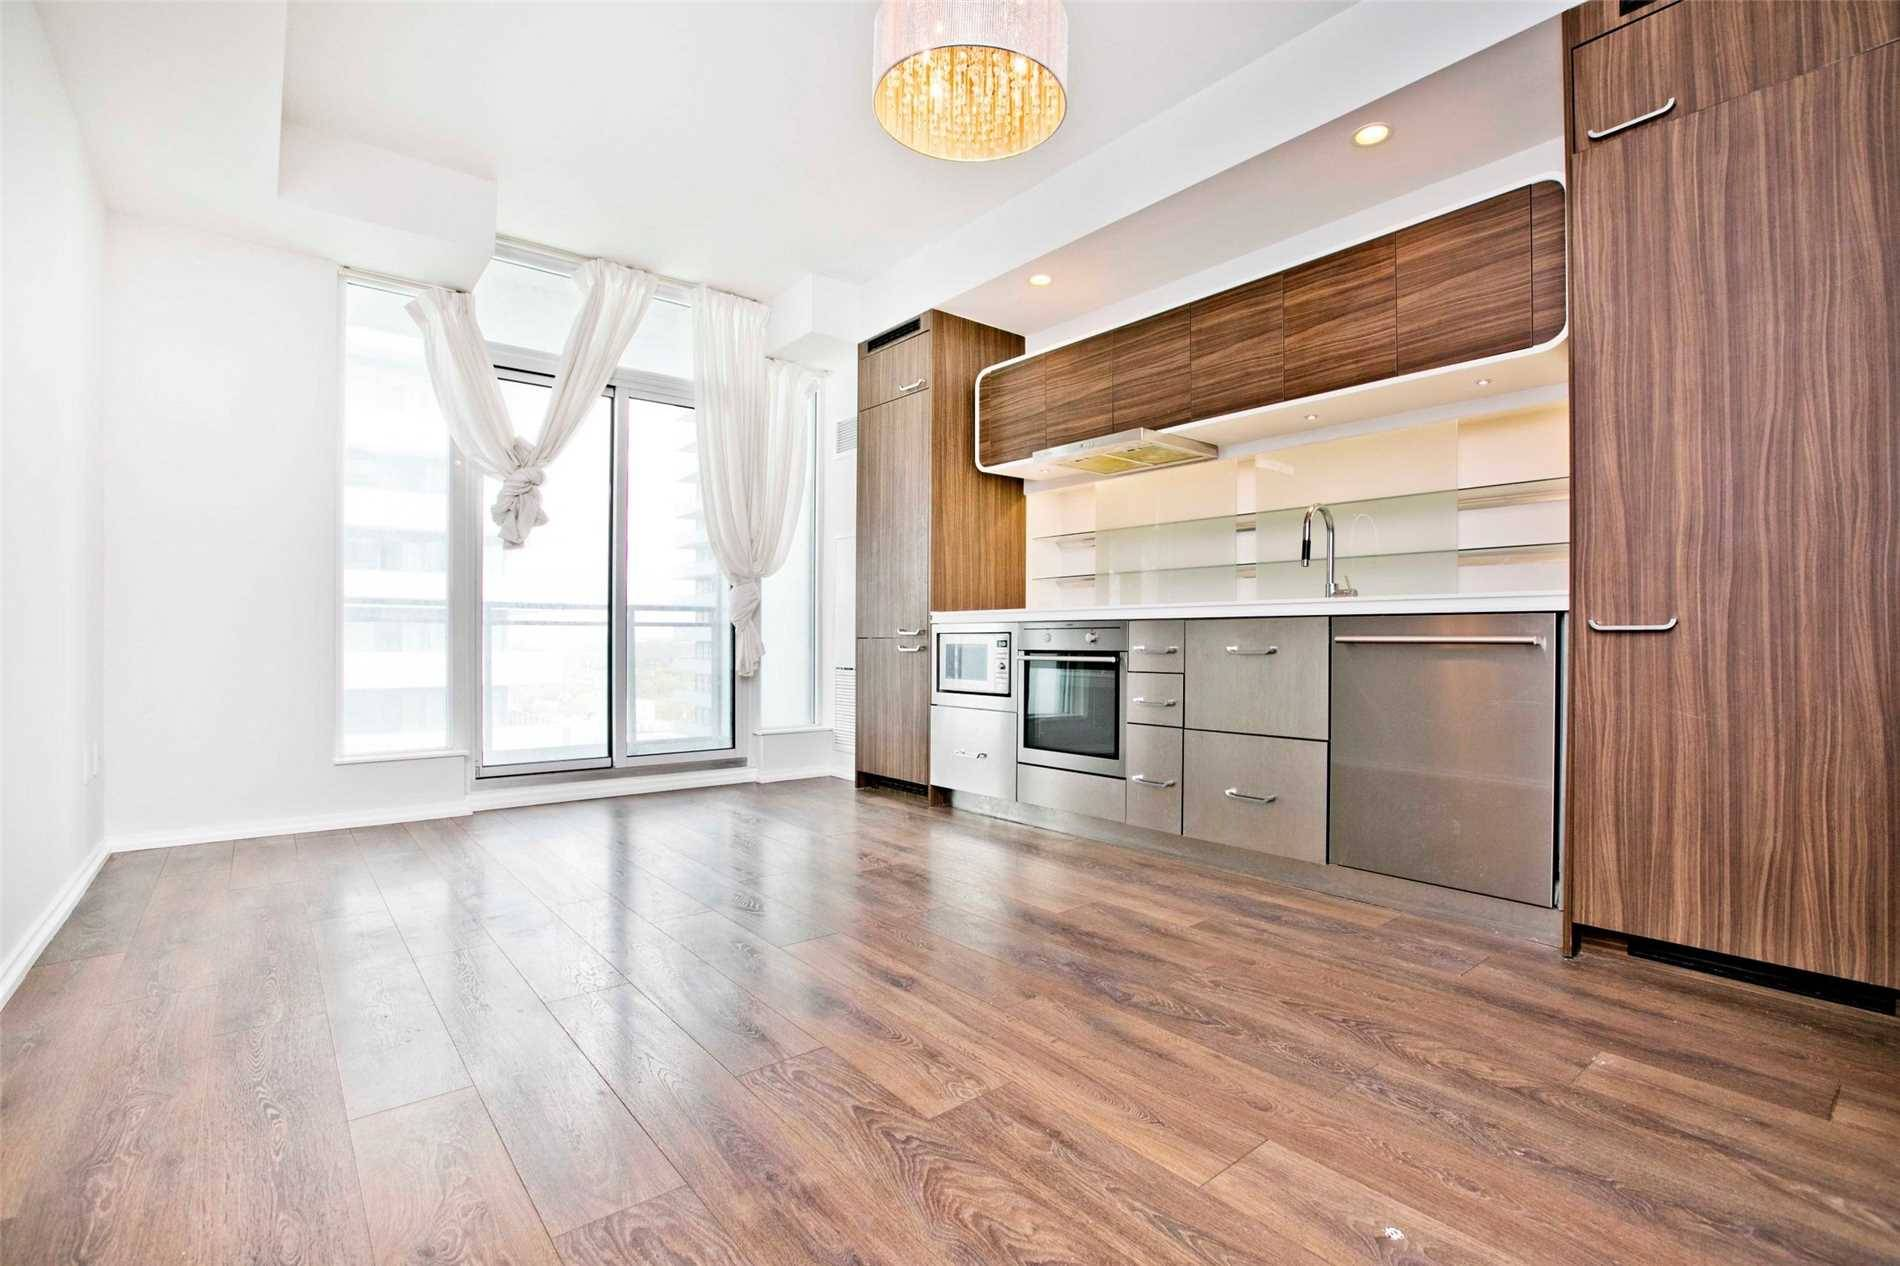 Condo for sale at 45 Charles St Unit 3108 Toronto Ontario - MLS: C4454855